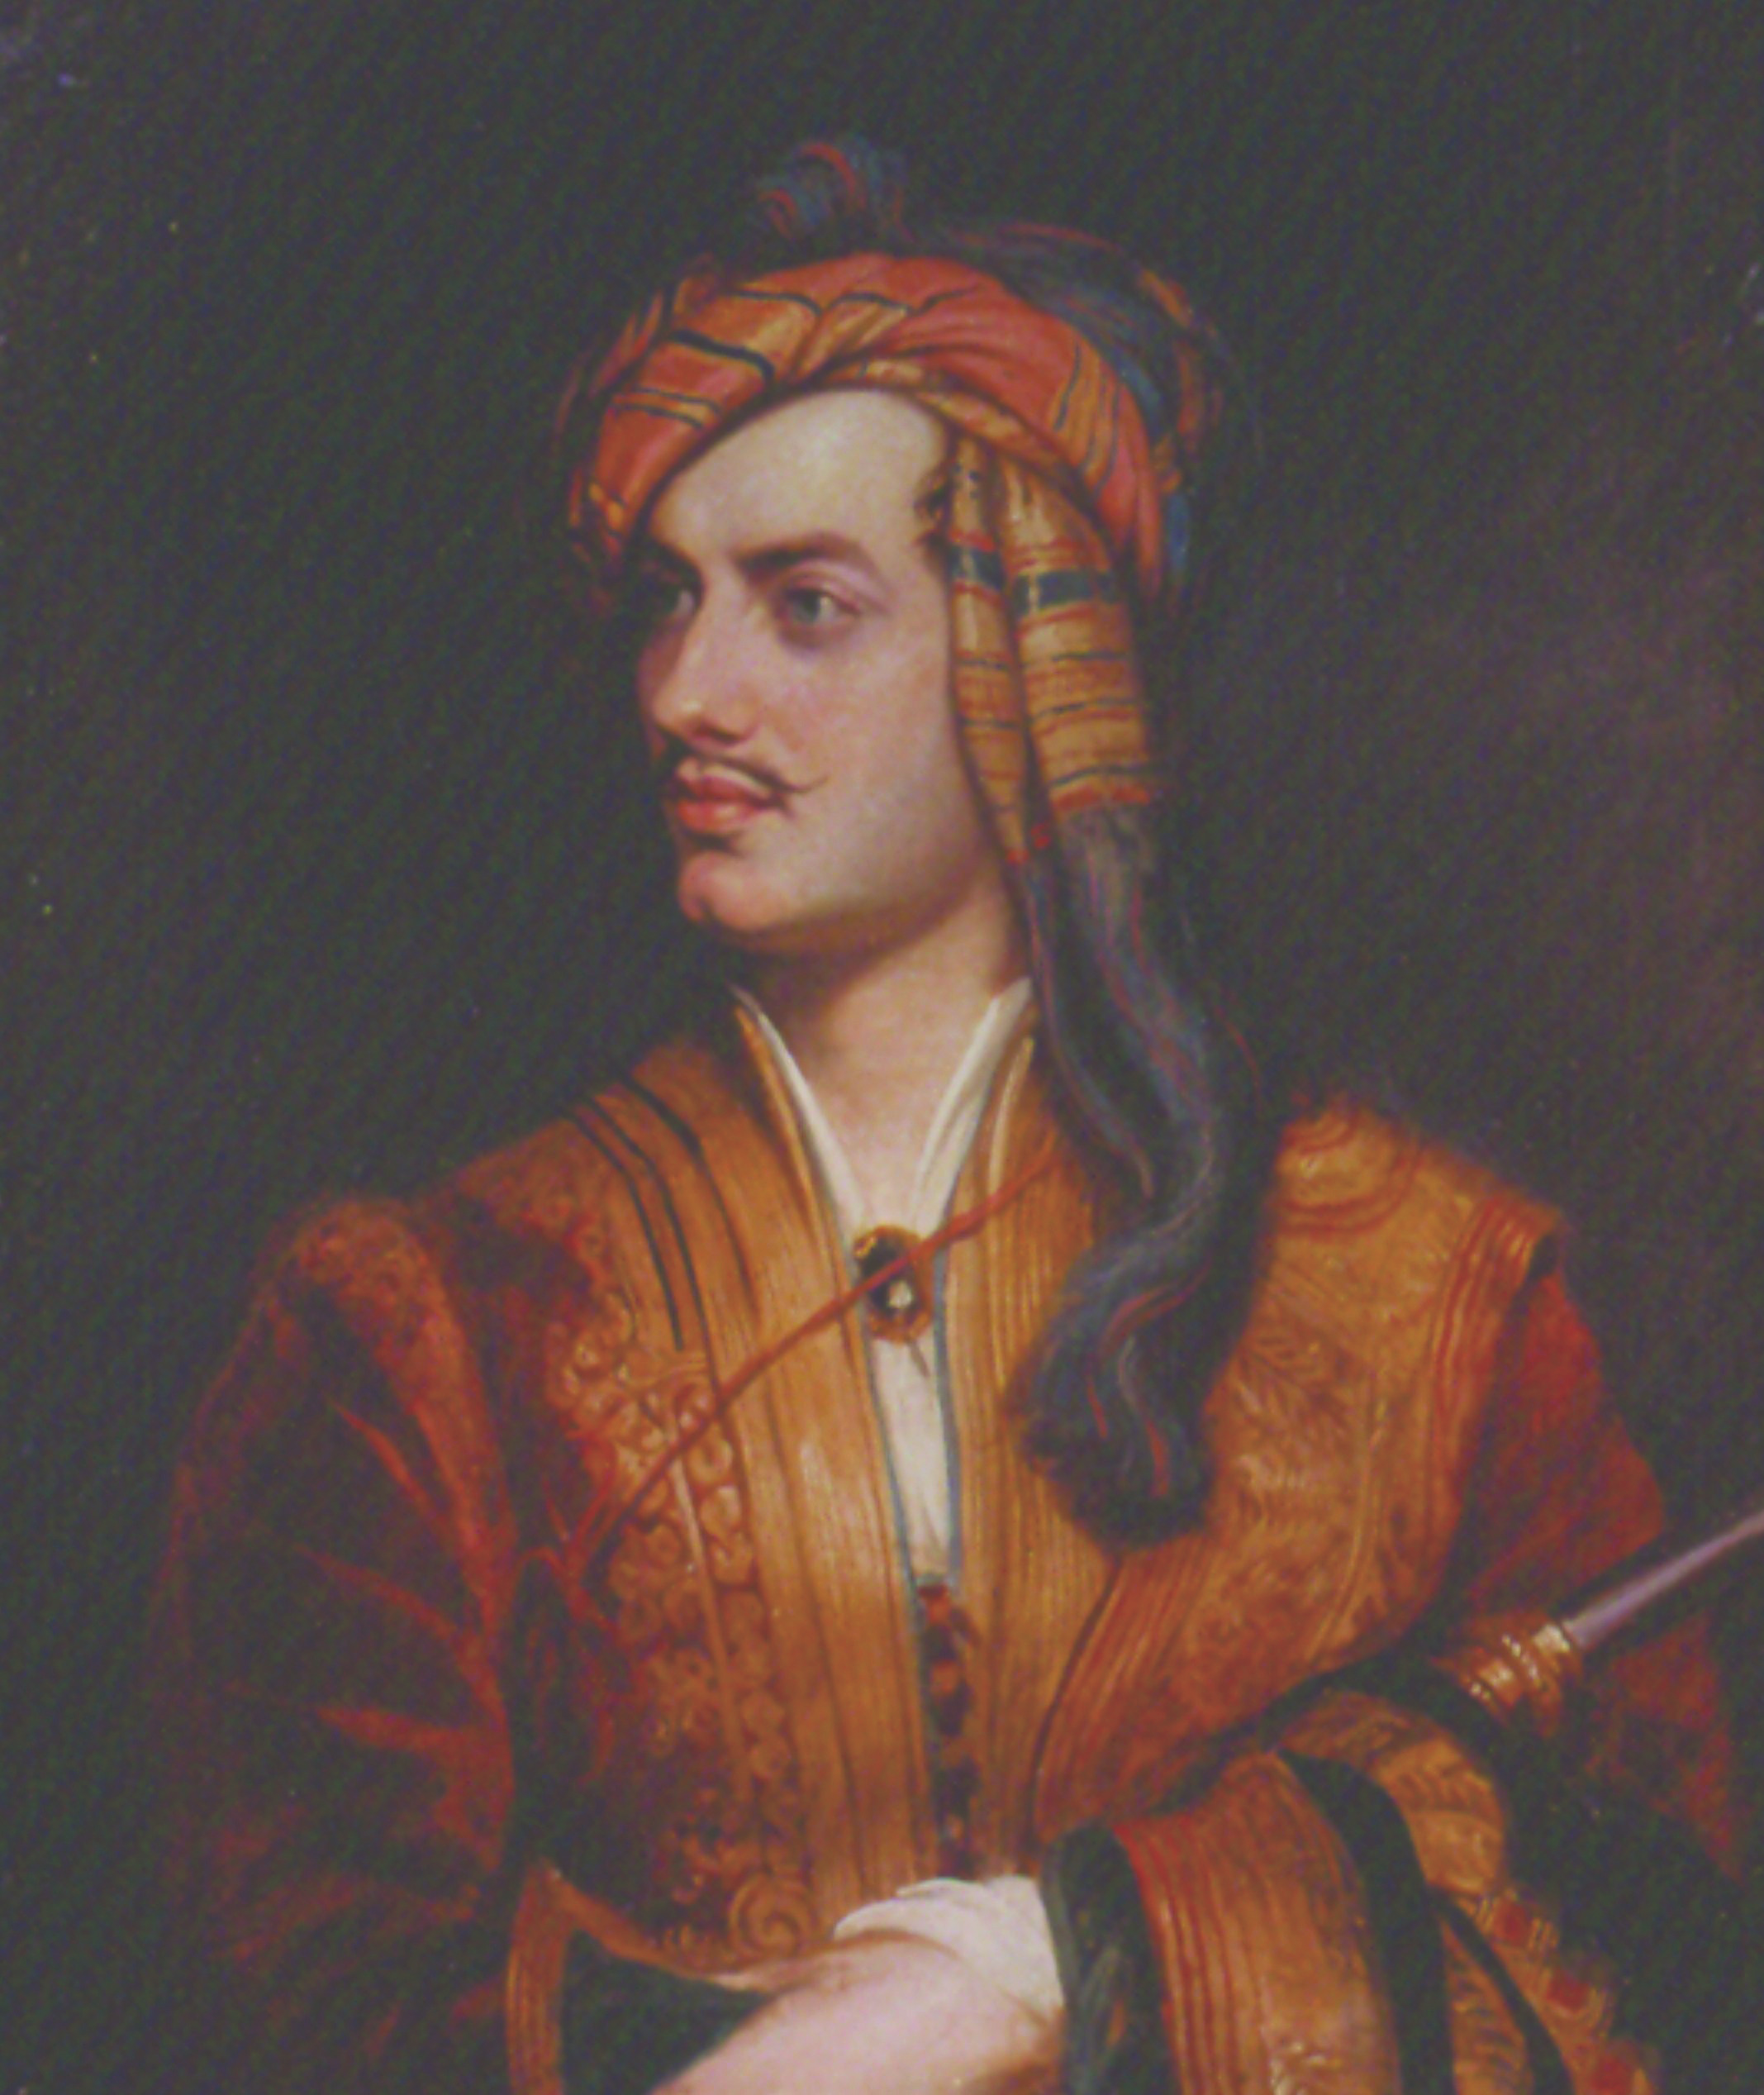 lord byron 1788 1824 in albanian dress a sartorial response rgn=main view=fulltext